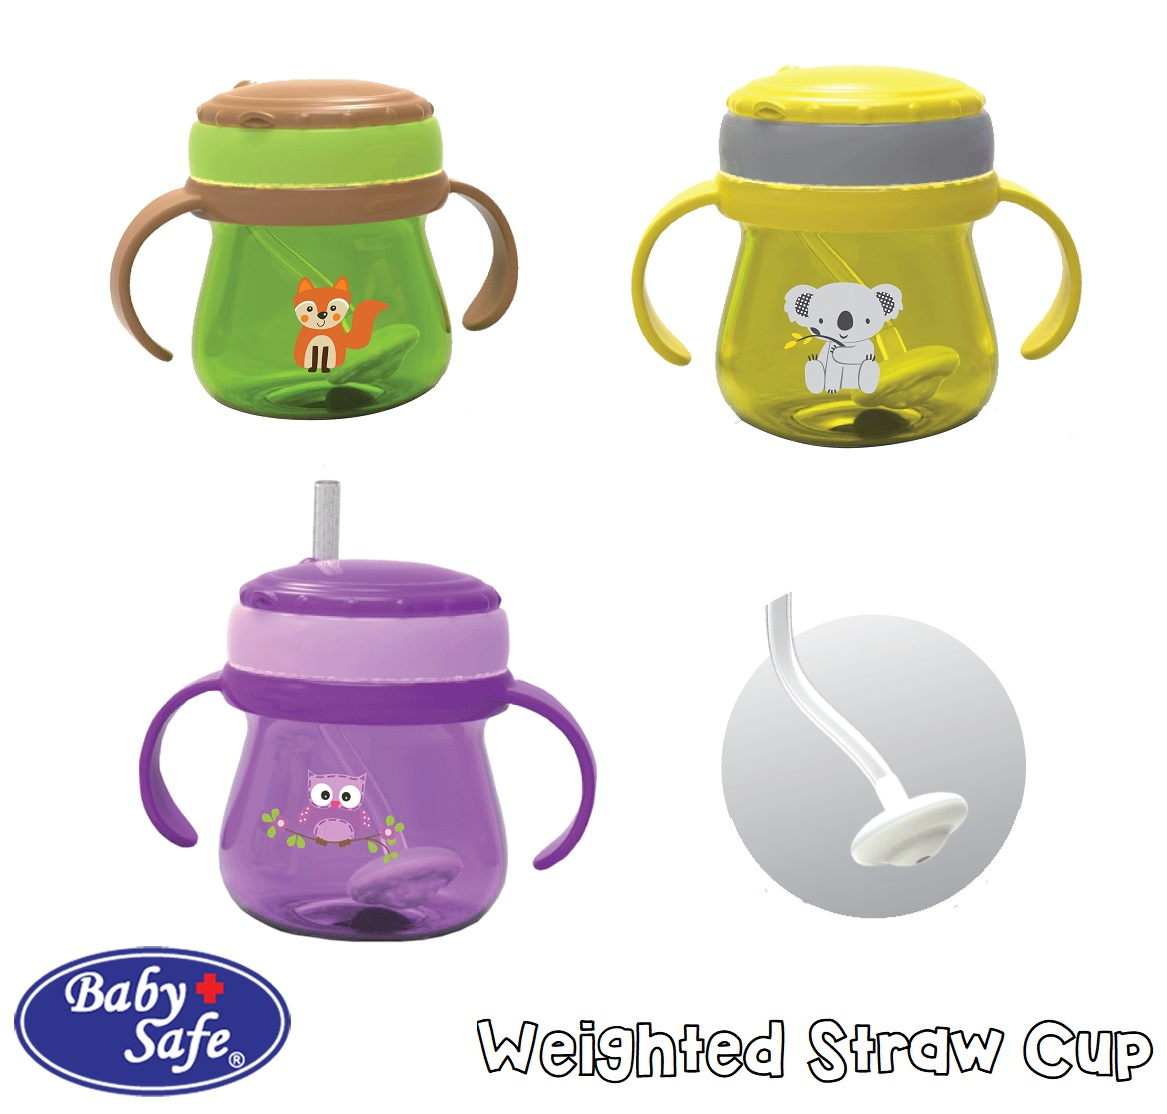 BabySafe Weighted Straw Cup